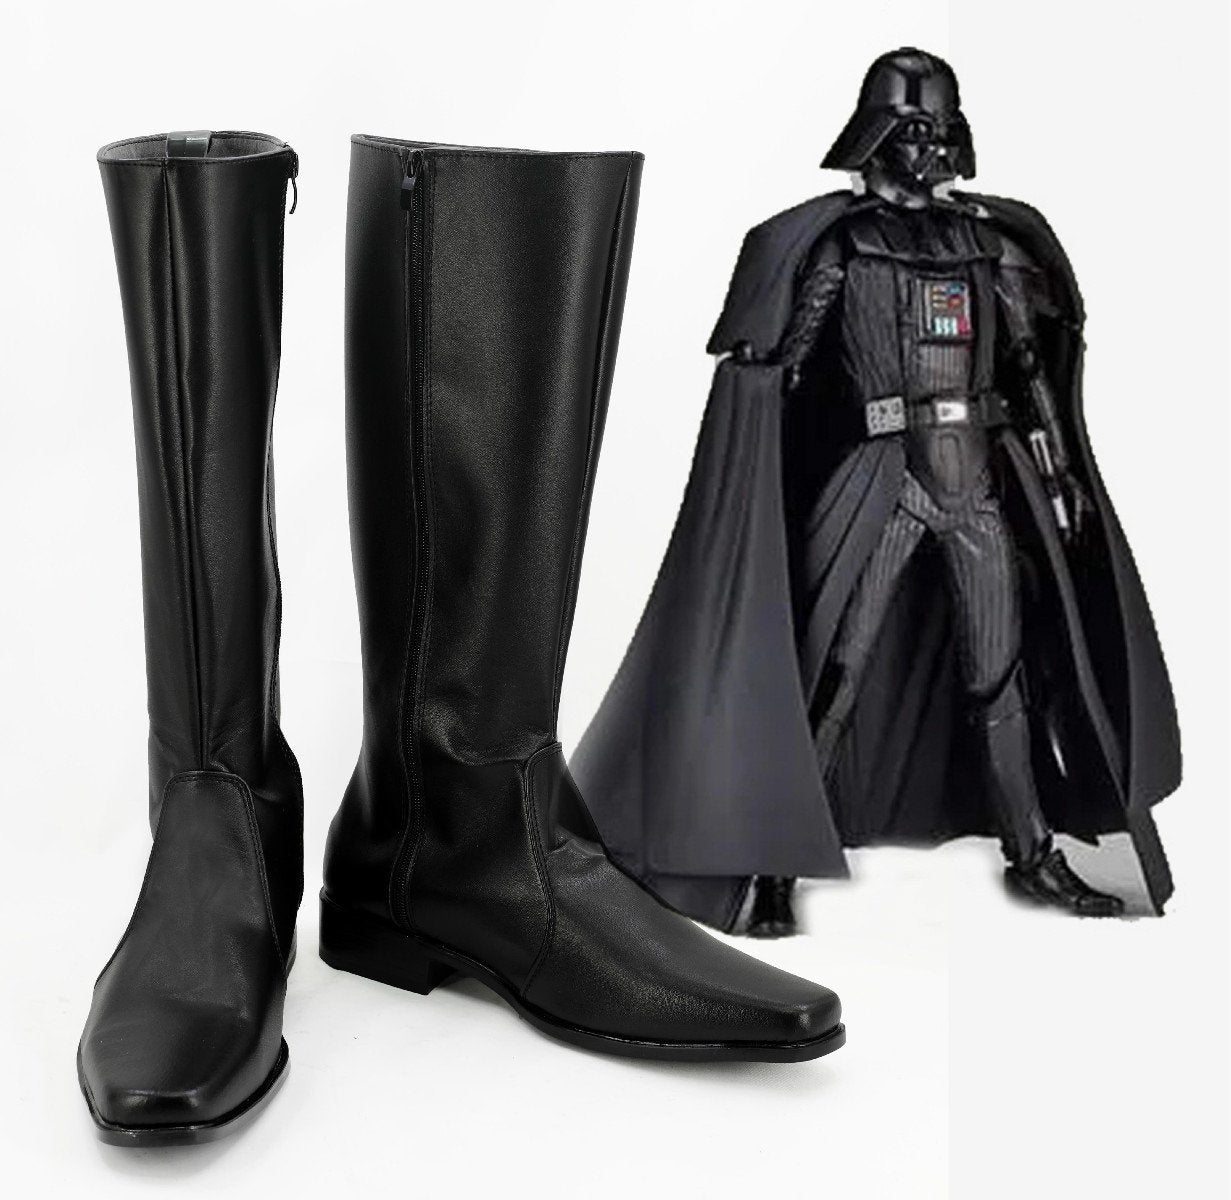 Star Wars Darth Vader Boots Cosplay Shoes